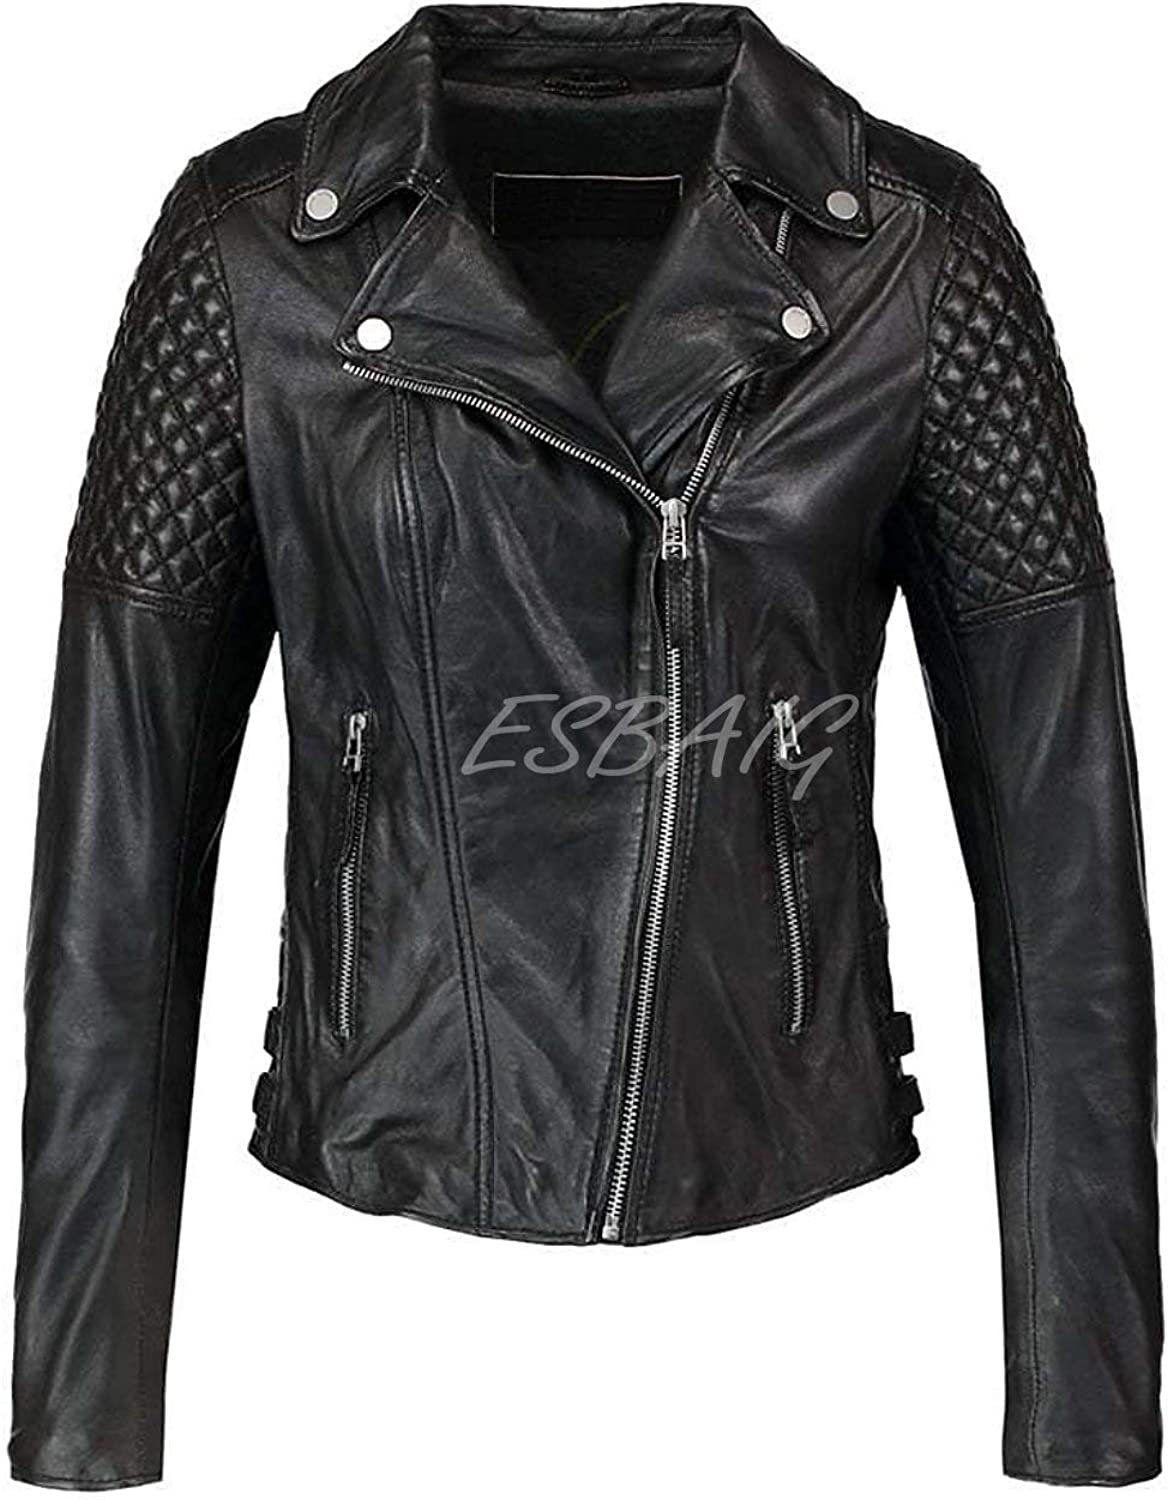 ESBAIG Womens Leather Jackets Stylish Motorcycle Bomber Biker Real Lambskin Leather Jacket for Women 533